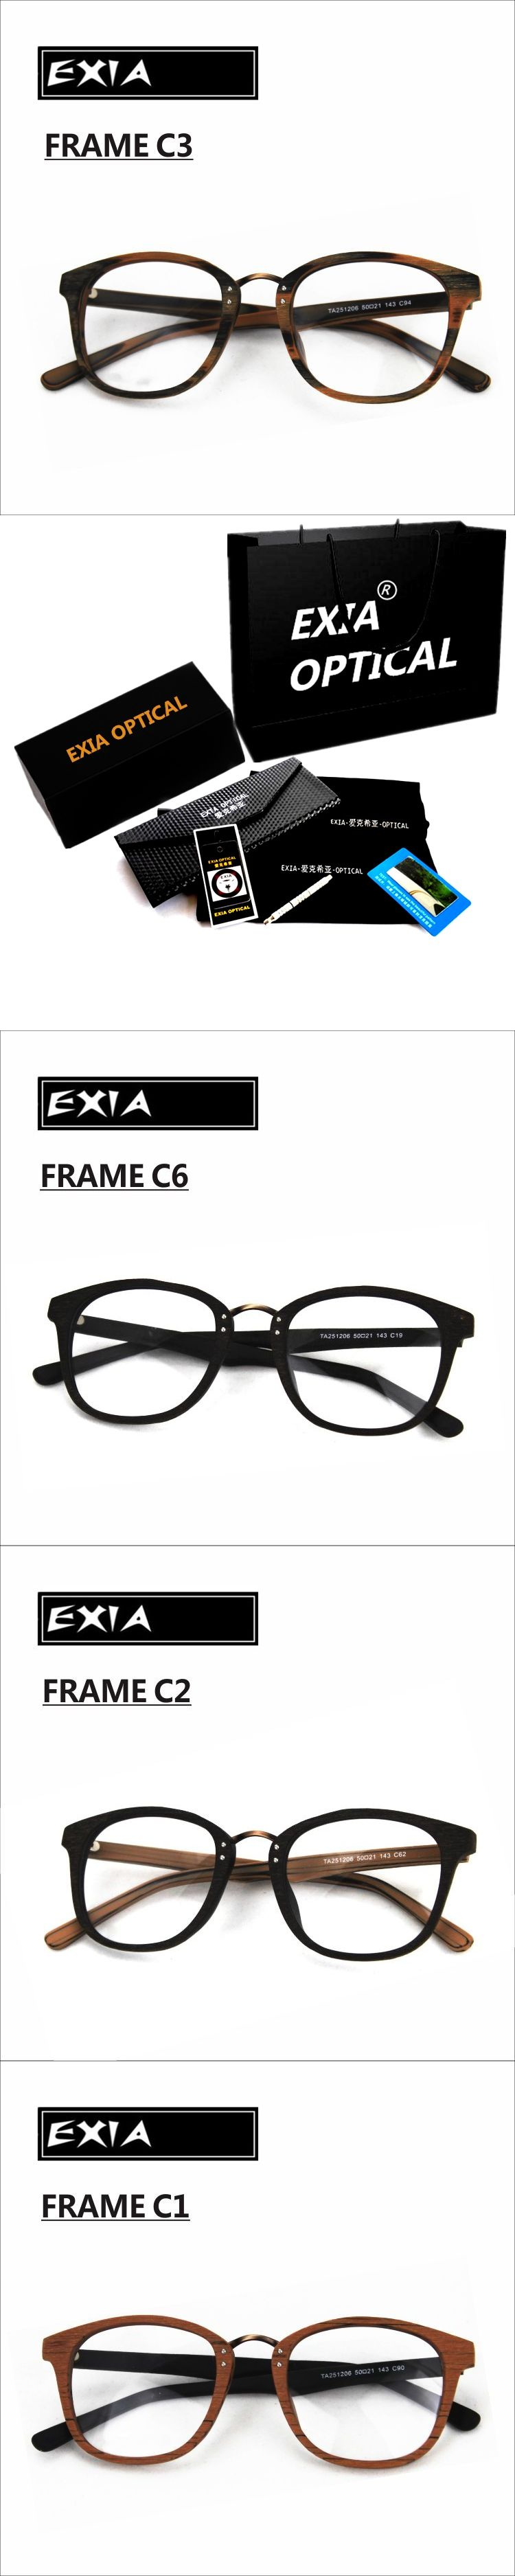 81b98c56dcf Ophthalmic Eyeglasses Frames Acetate Top Quality Spectacle RX Lenses  Available EXIA OPTICAL KD-38 Series